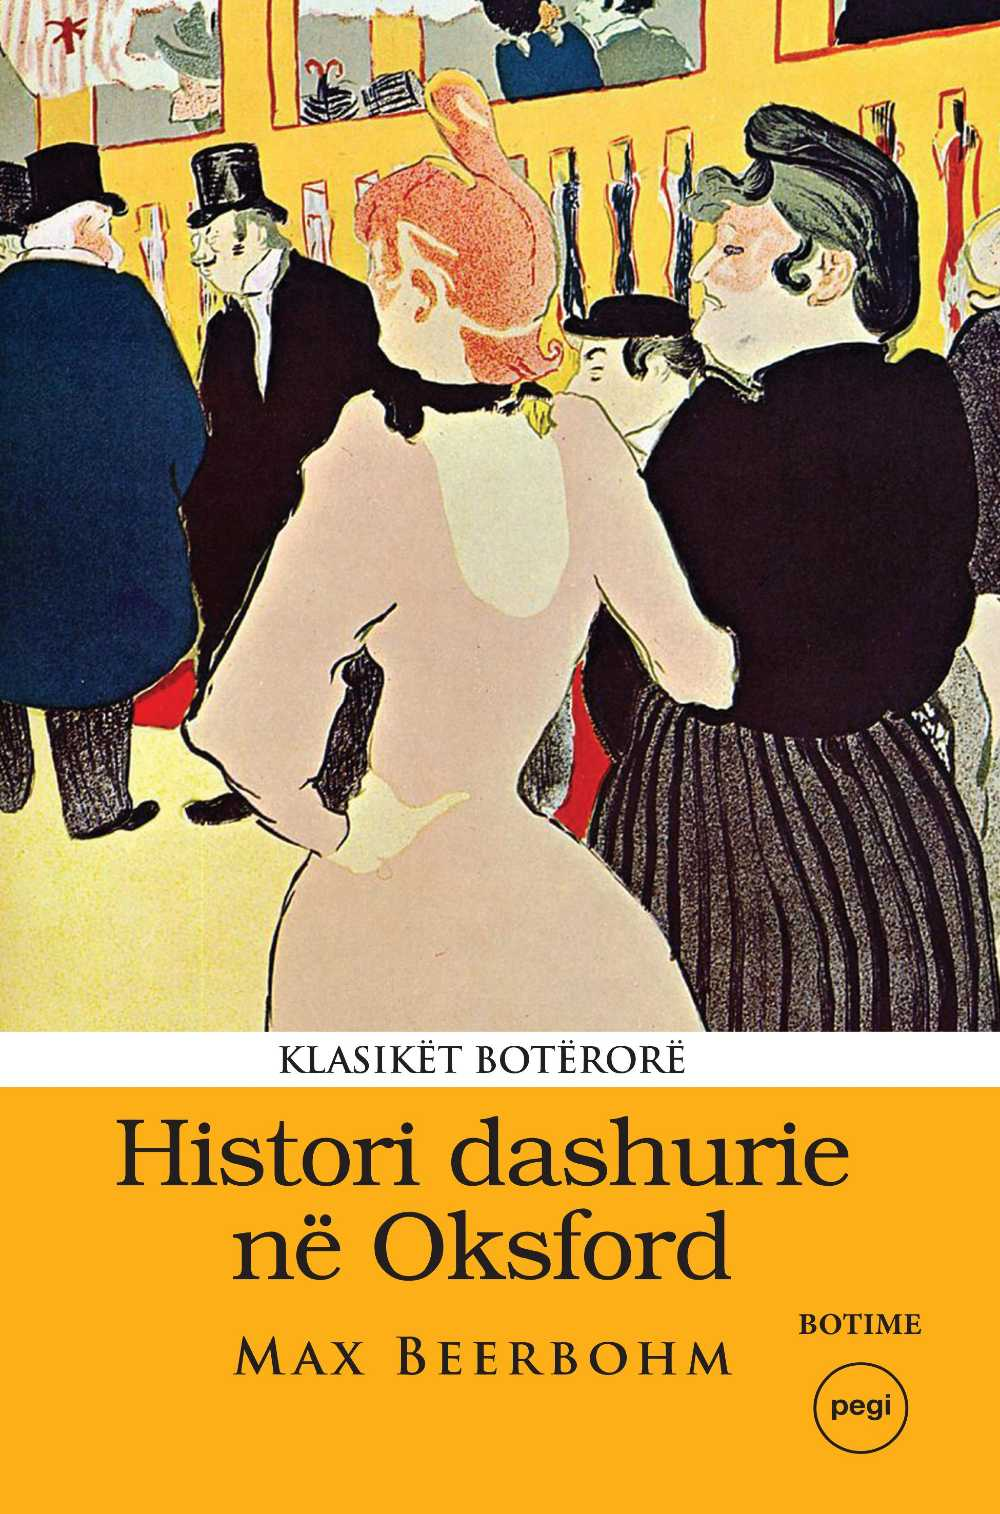 images/book-images/histori-dashurie-ne-oxford.jpg